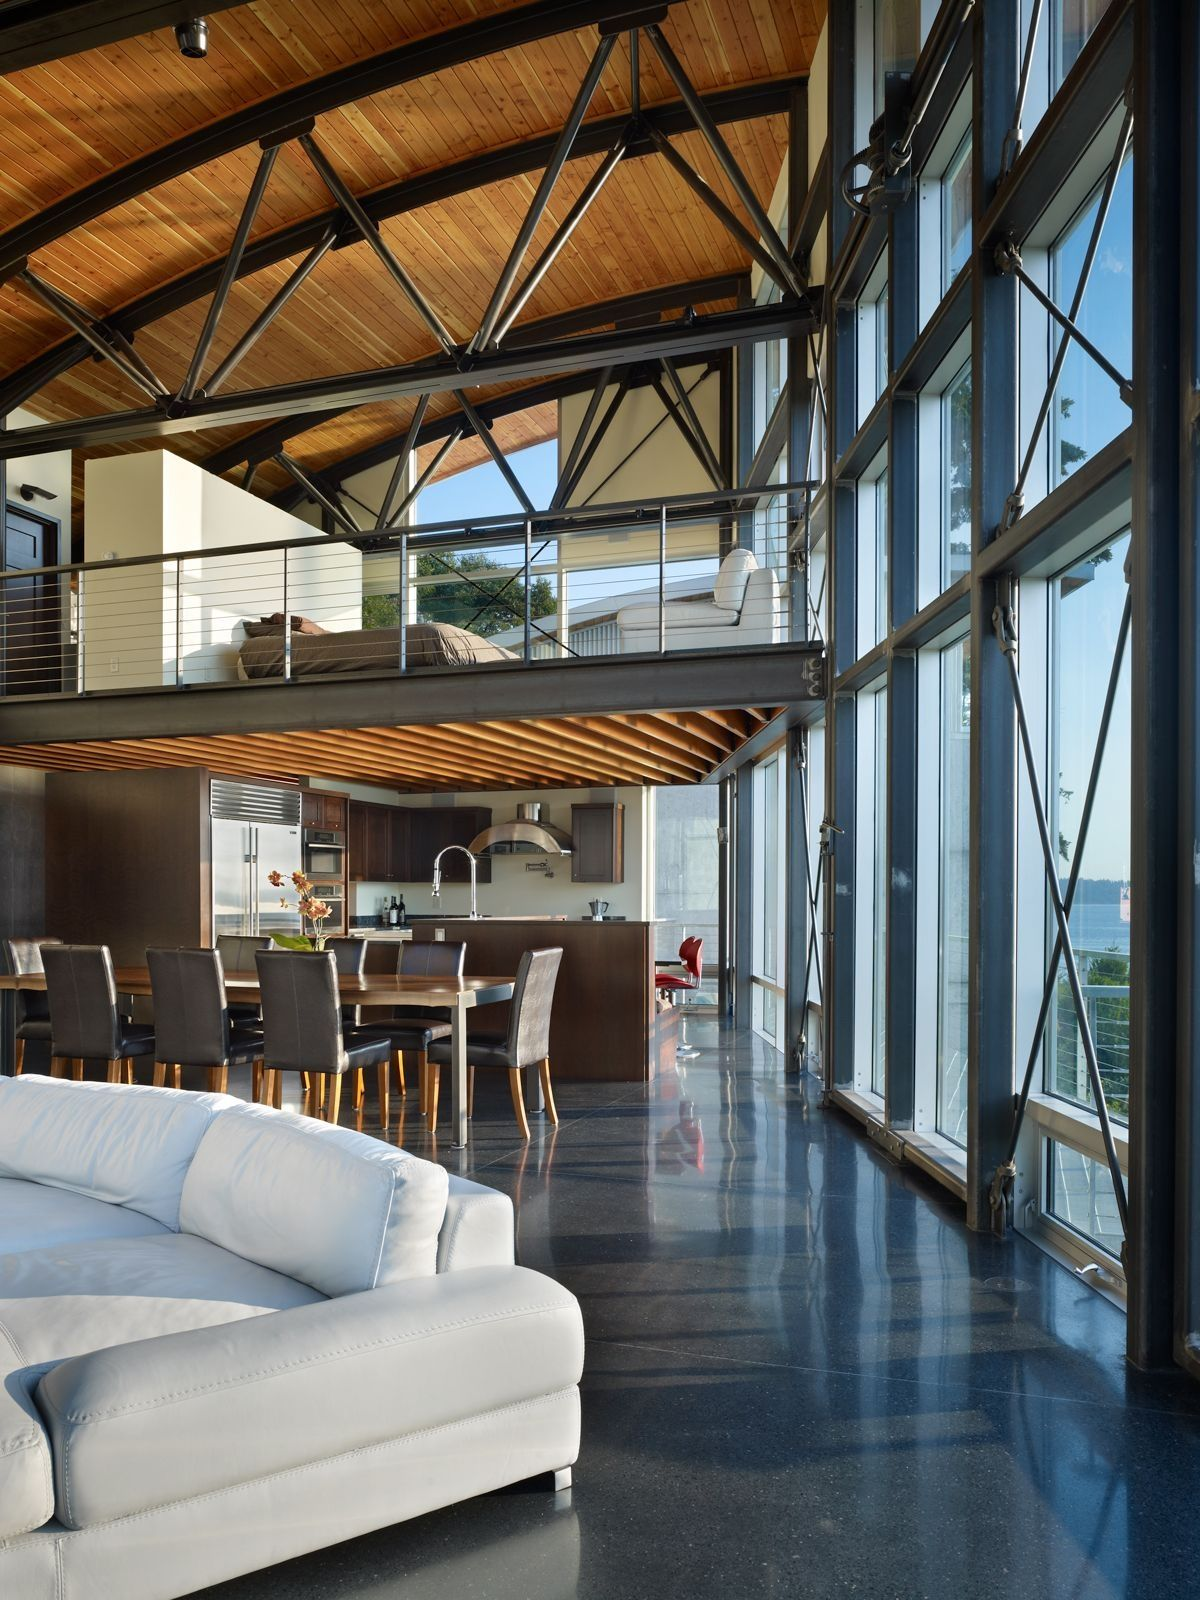 lawrence architects combines steel, glass and concrete to make ... - Traum Wohnzimmer Modern